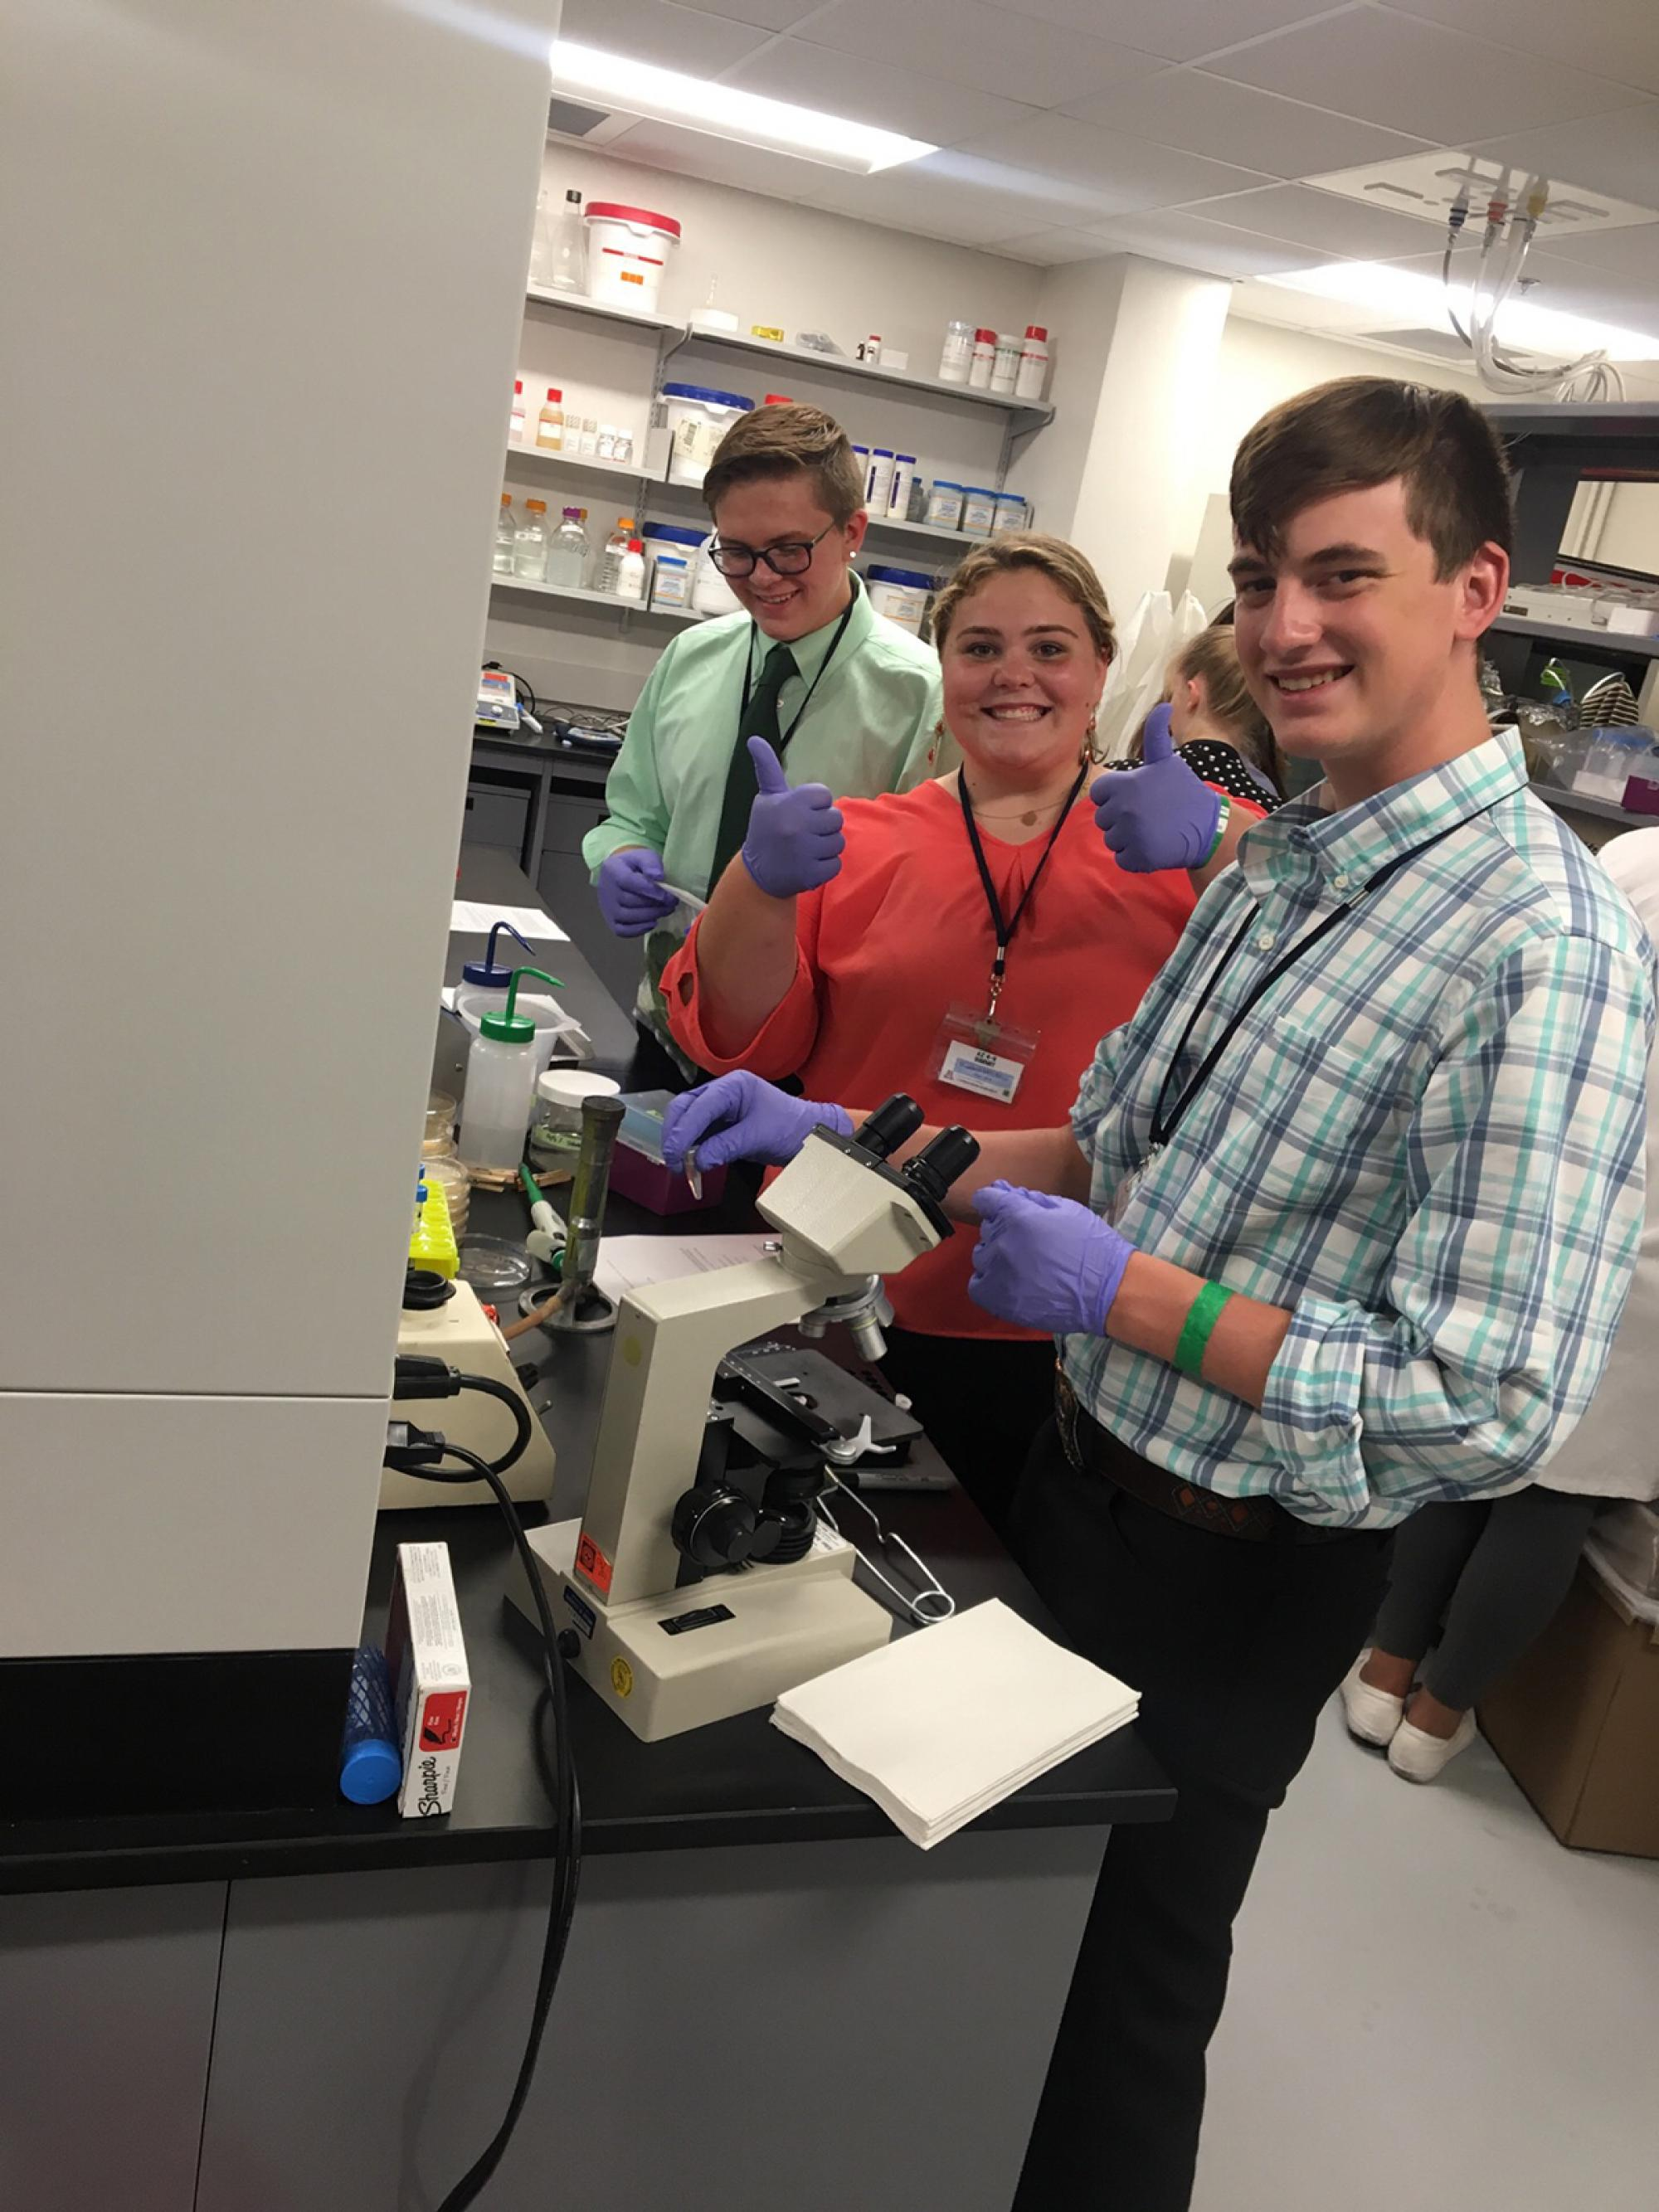 4-H members had the opportunity to learn about educational opportunities and careers in the medical field.